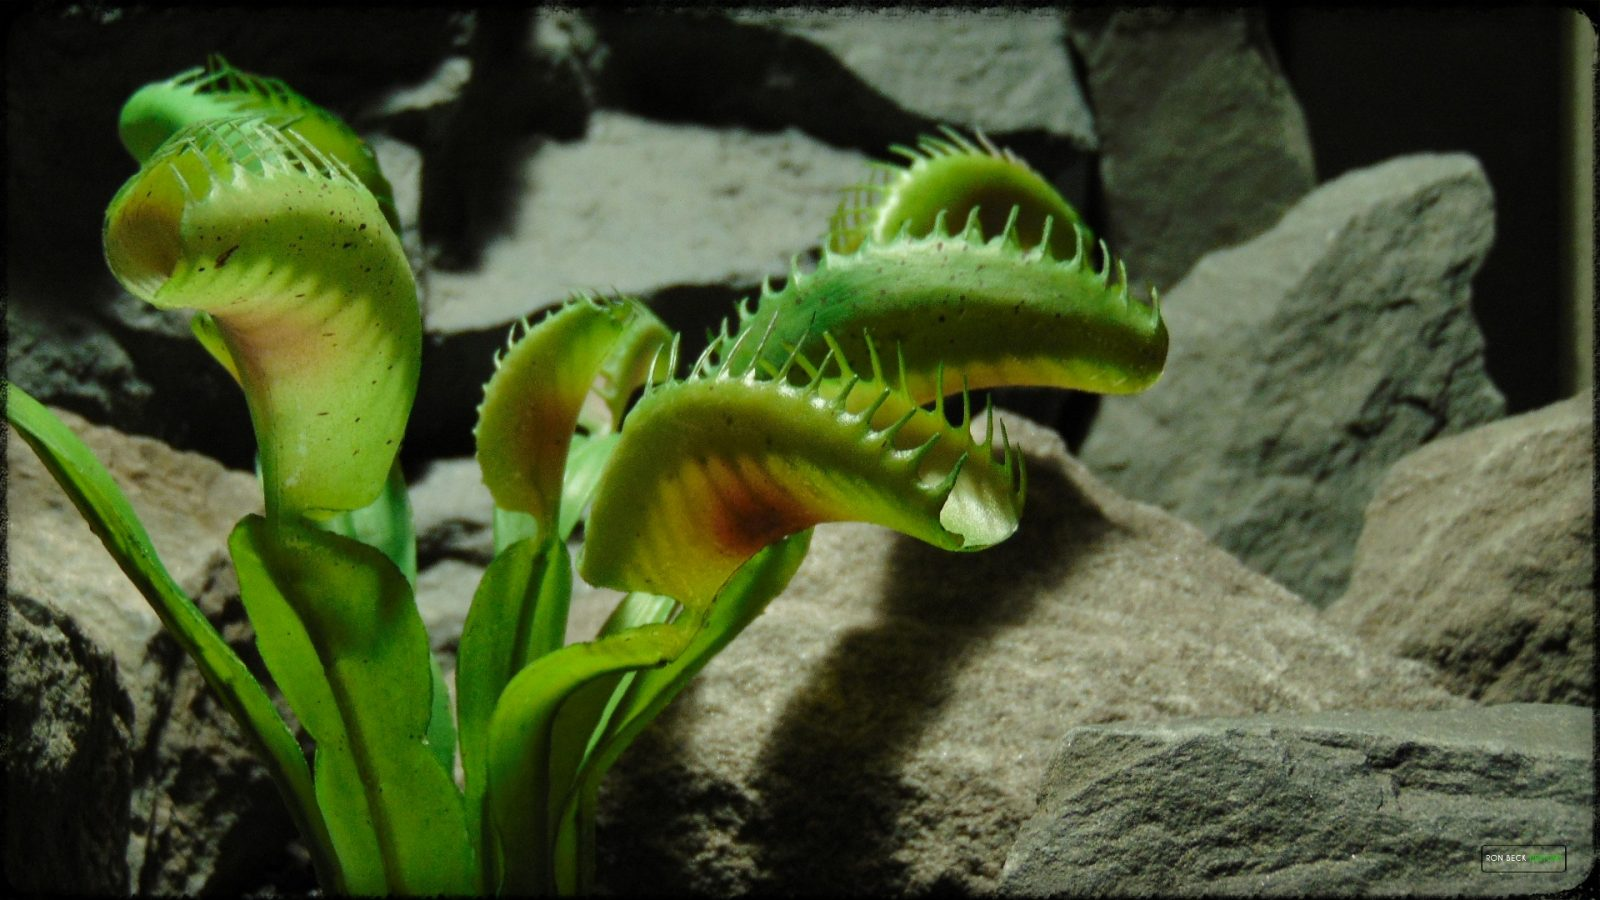 Free Desktop Wallpaper - Artificial Venus Flytrap - Ron Beck Designs - 1920 x 1080